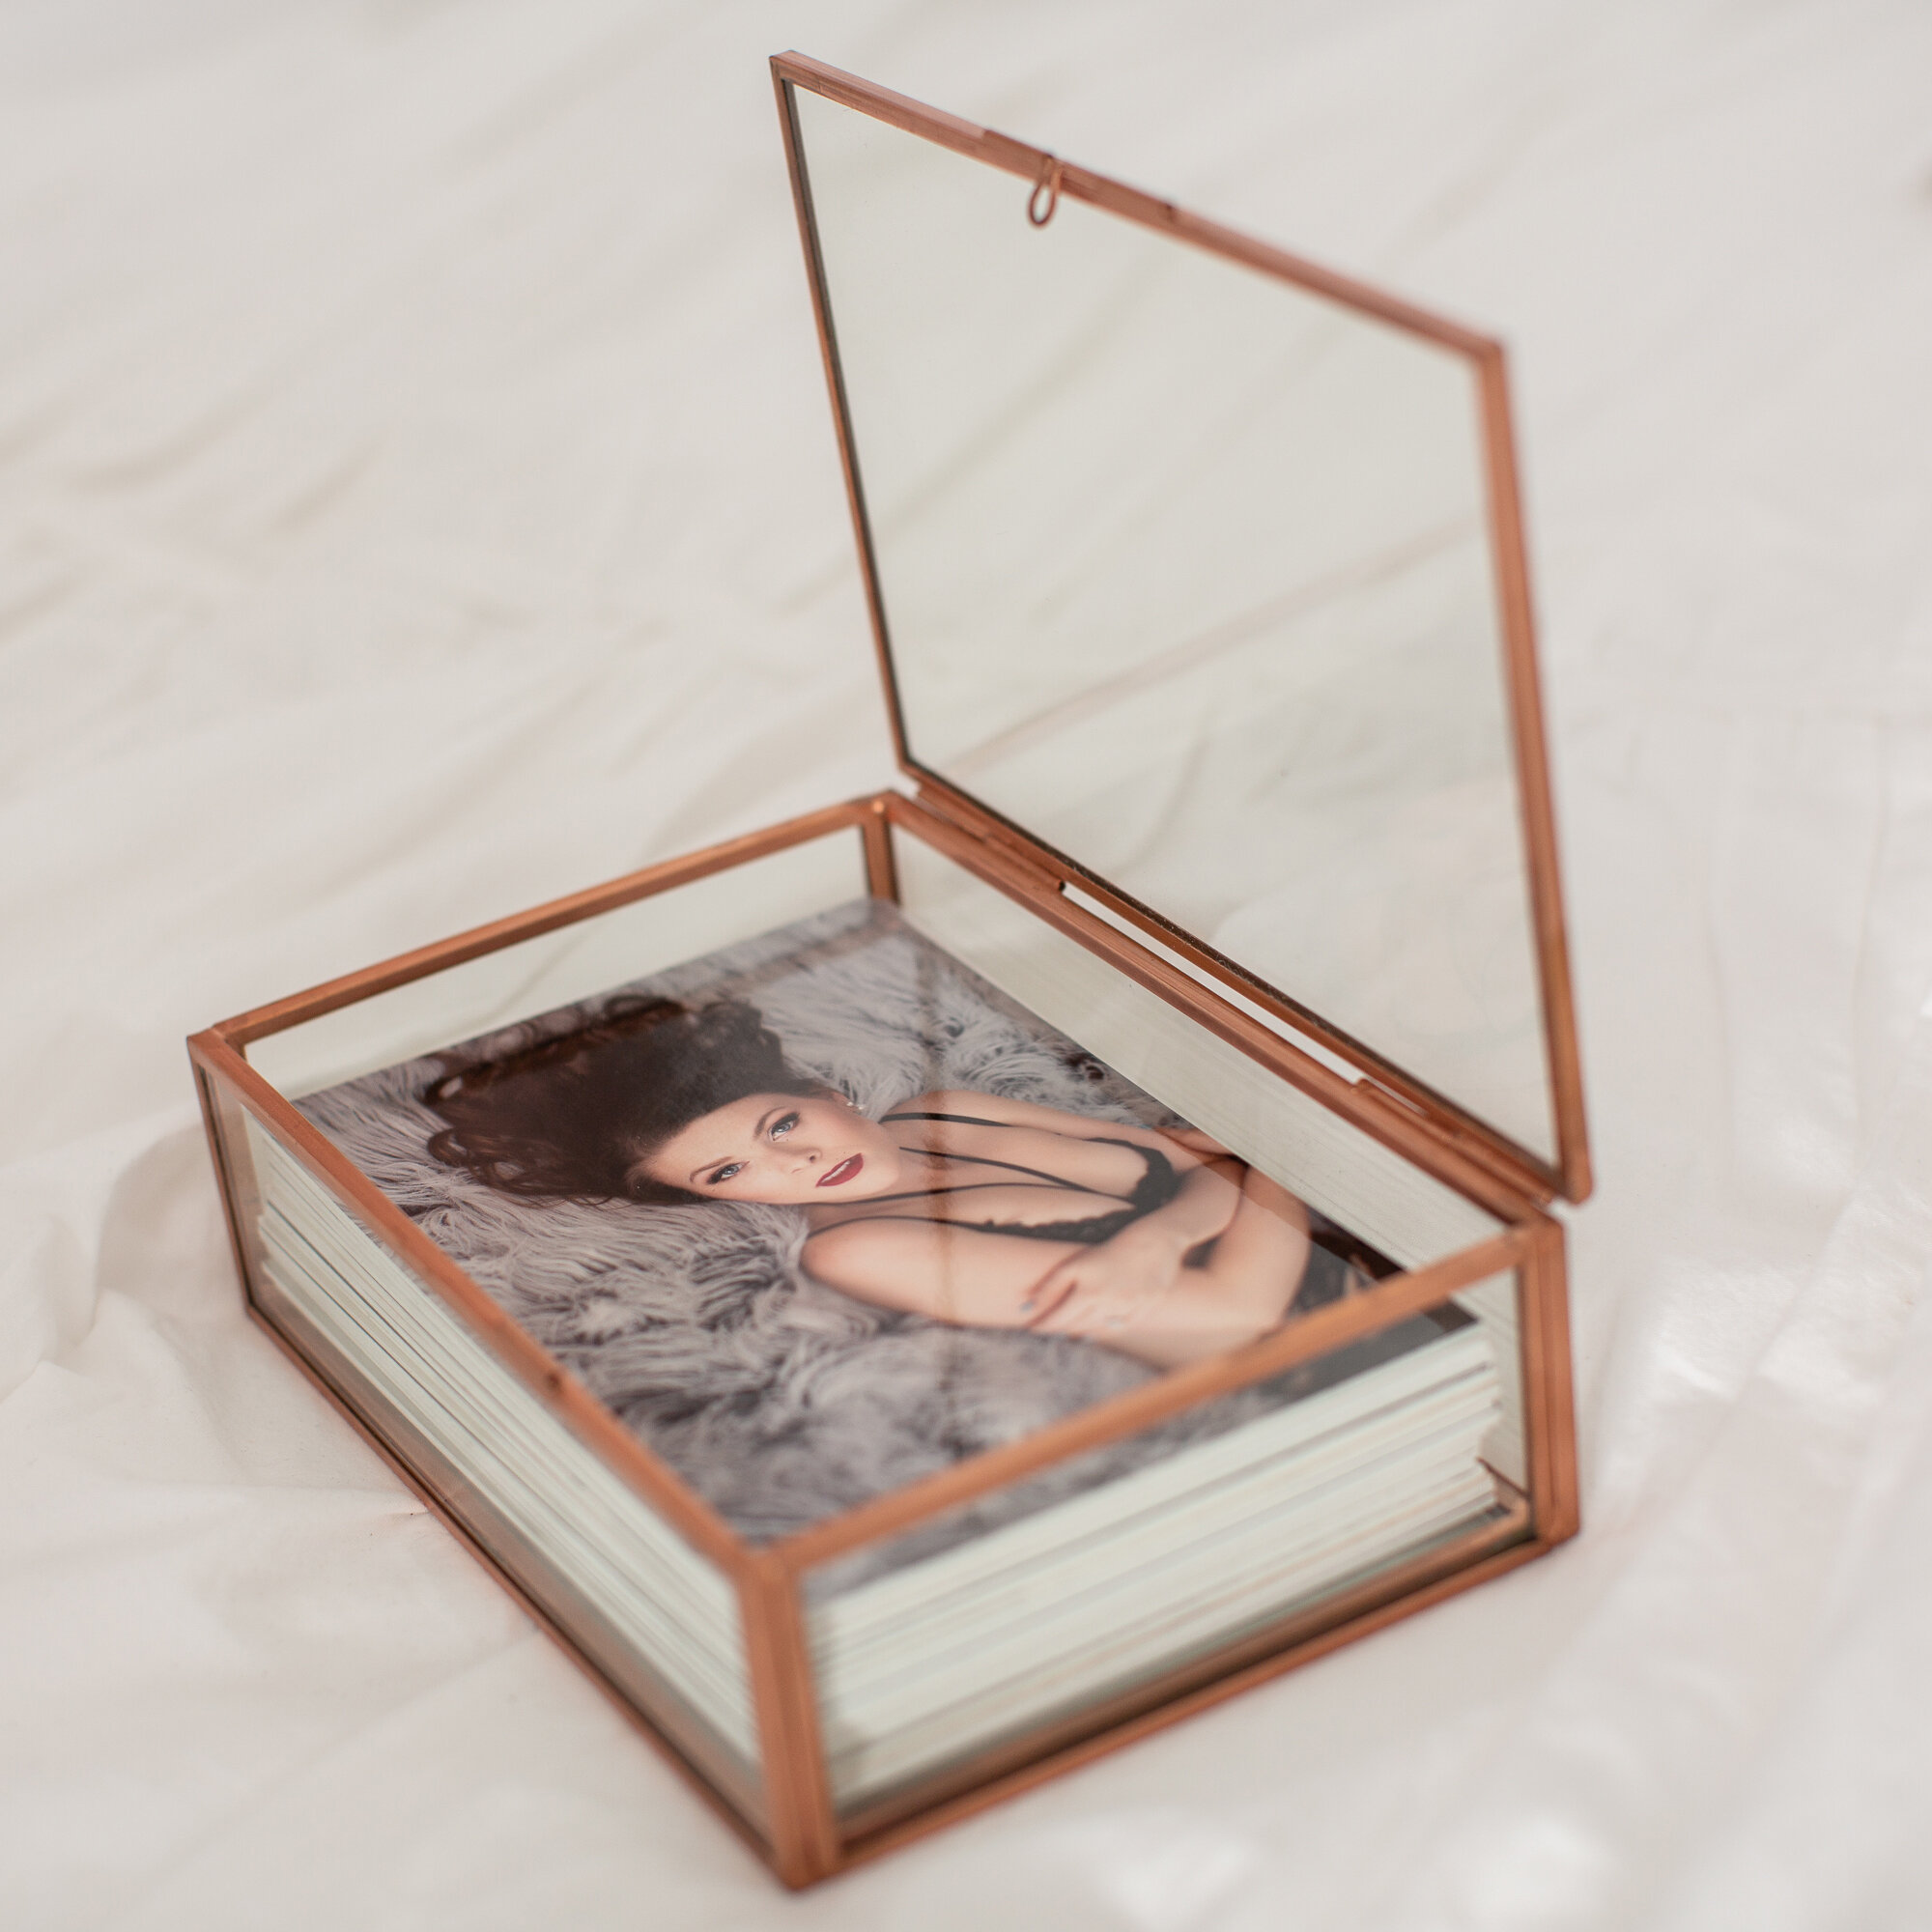 GLASS KEEPSAKE BOX - Stack of mounted photos inside of a glass box with rose gold accentsGlamorous vintage vibe